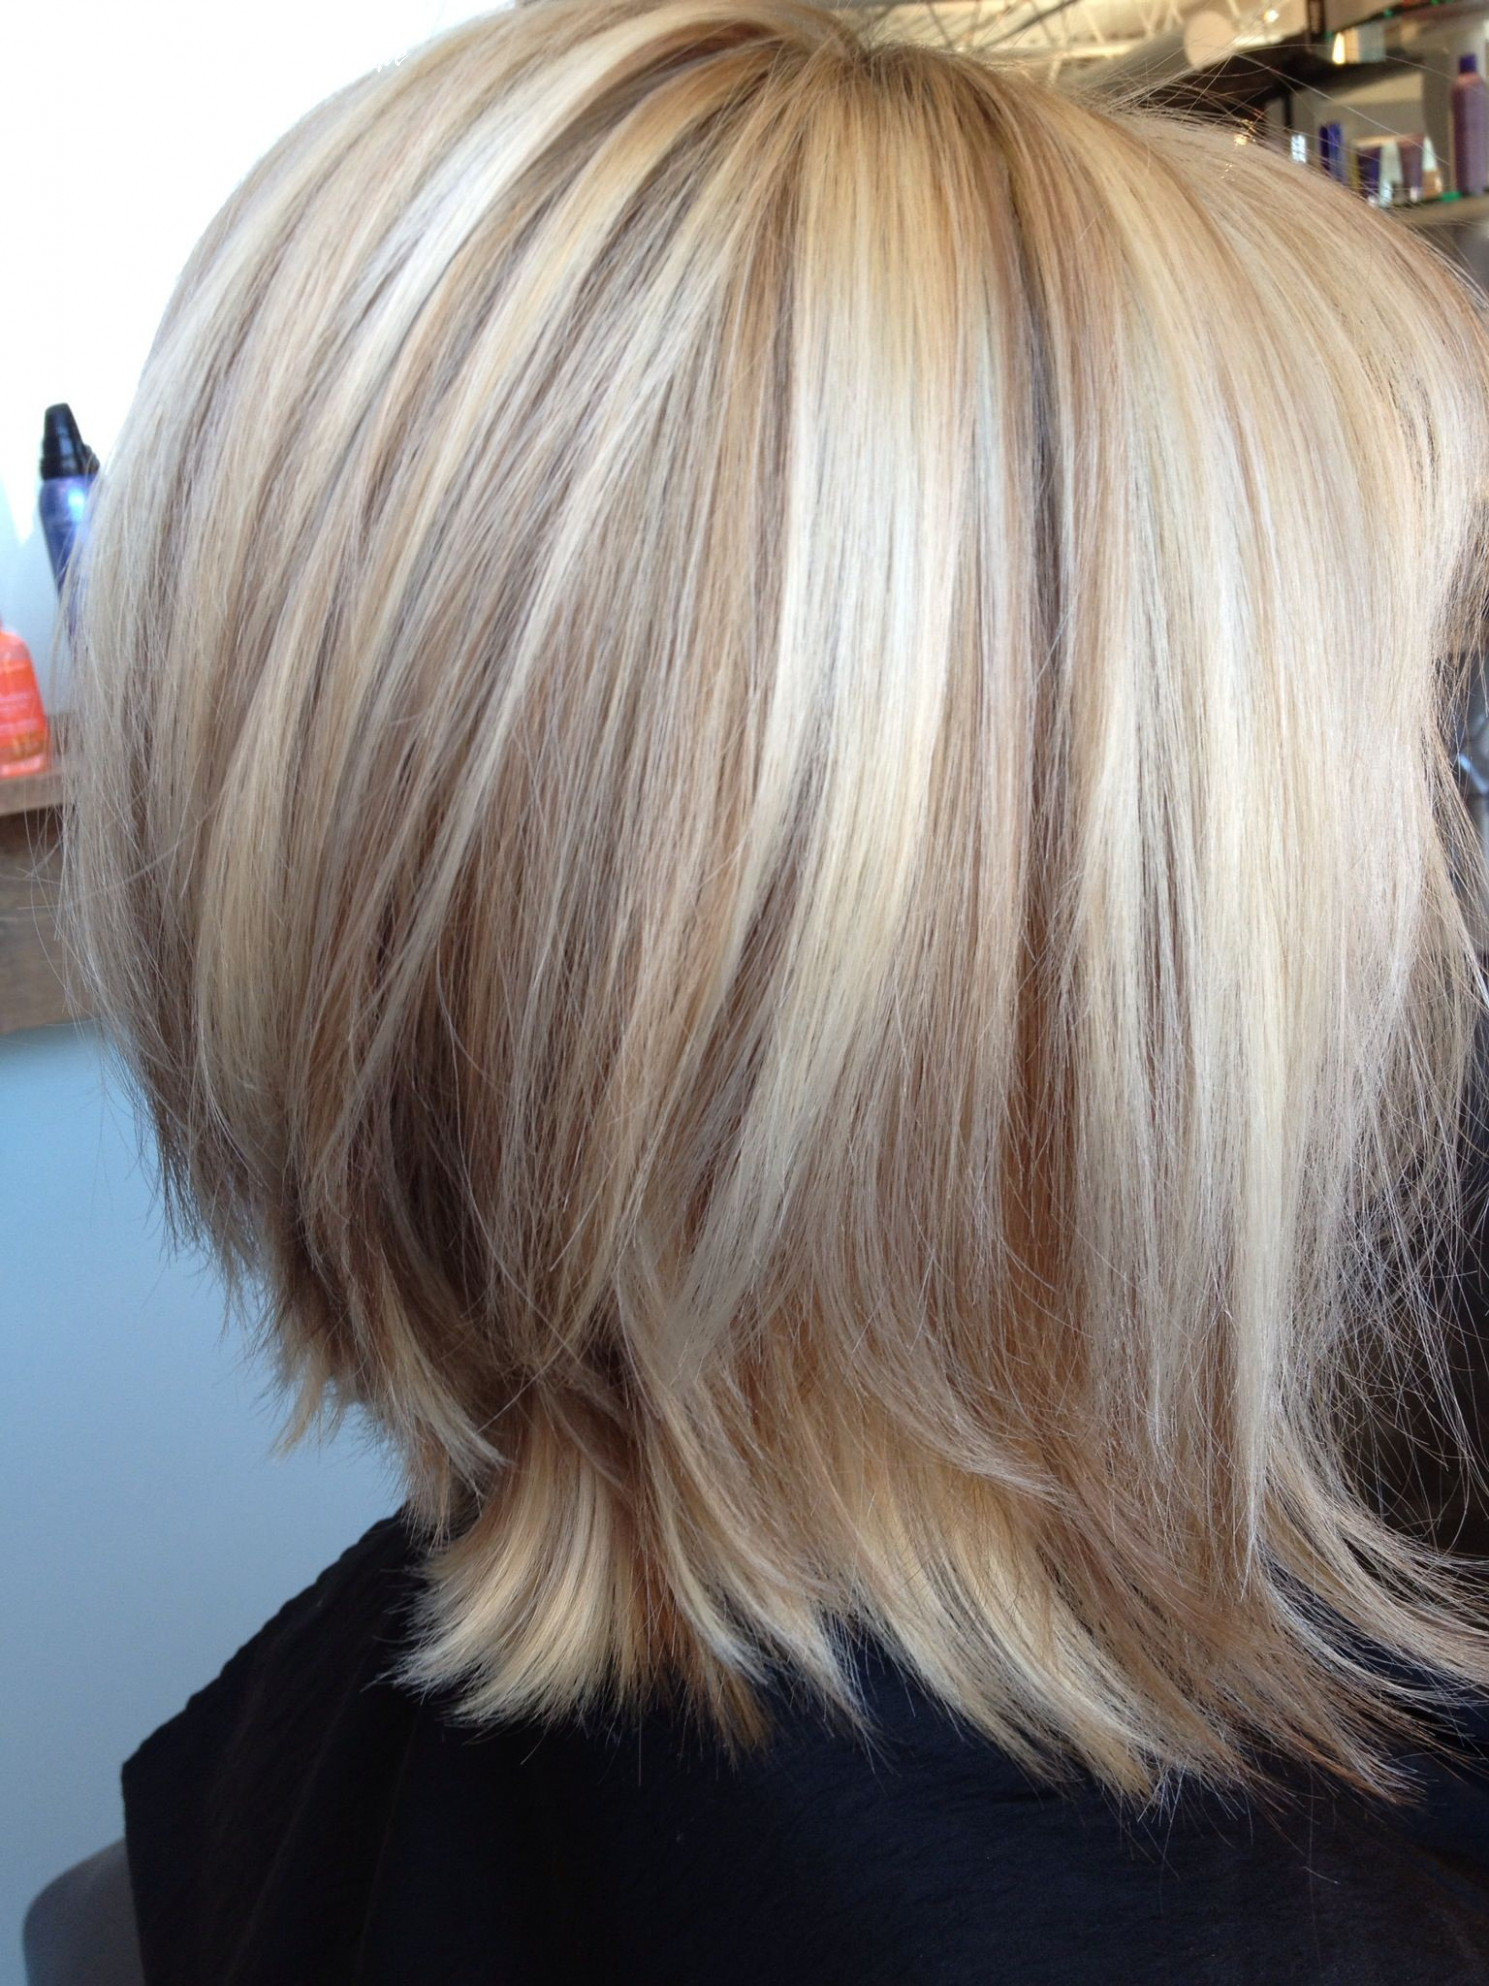 Gorgeous blonde bob with lowlights (like how longer layers flip